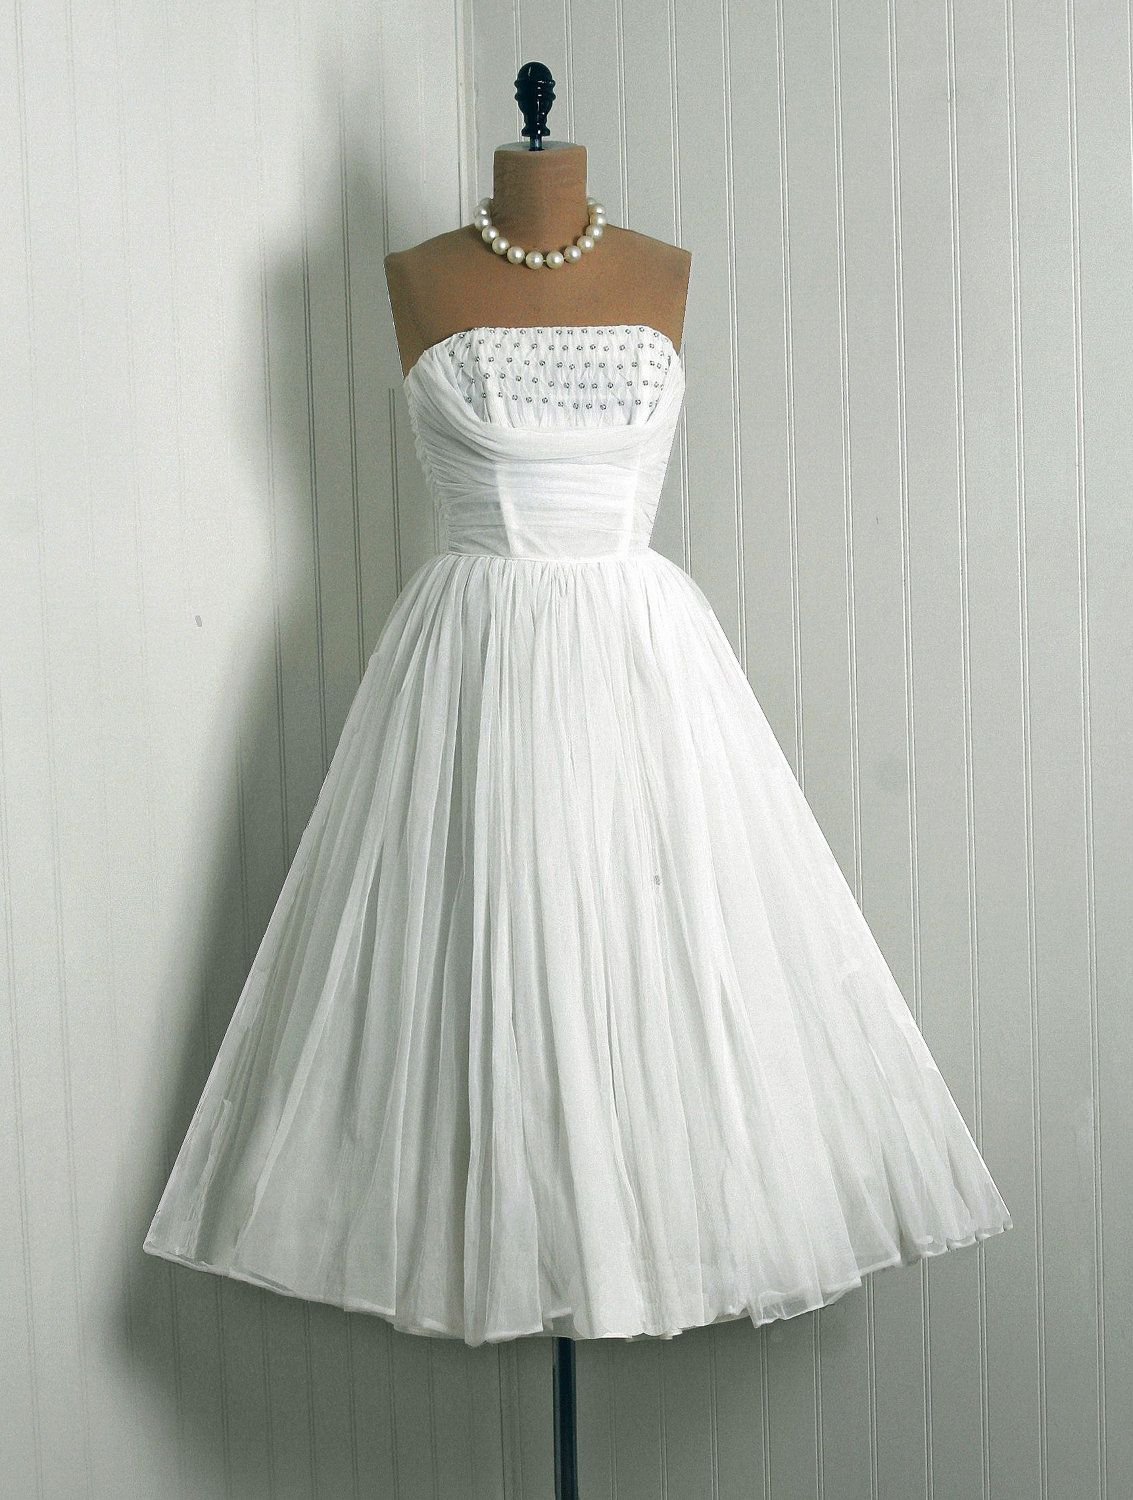 Rockabilly wedding dresses  us Vintage IvoryWhite Ruched by TimelessVixenVintage on Etsy